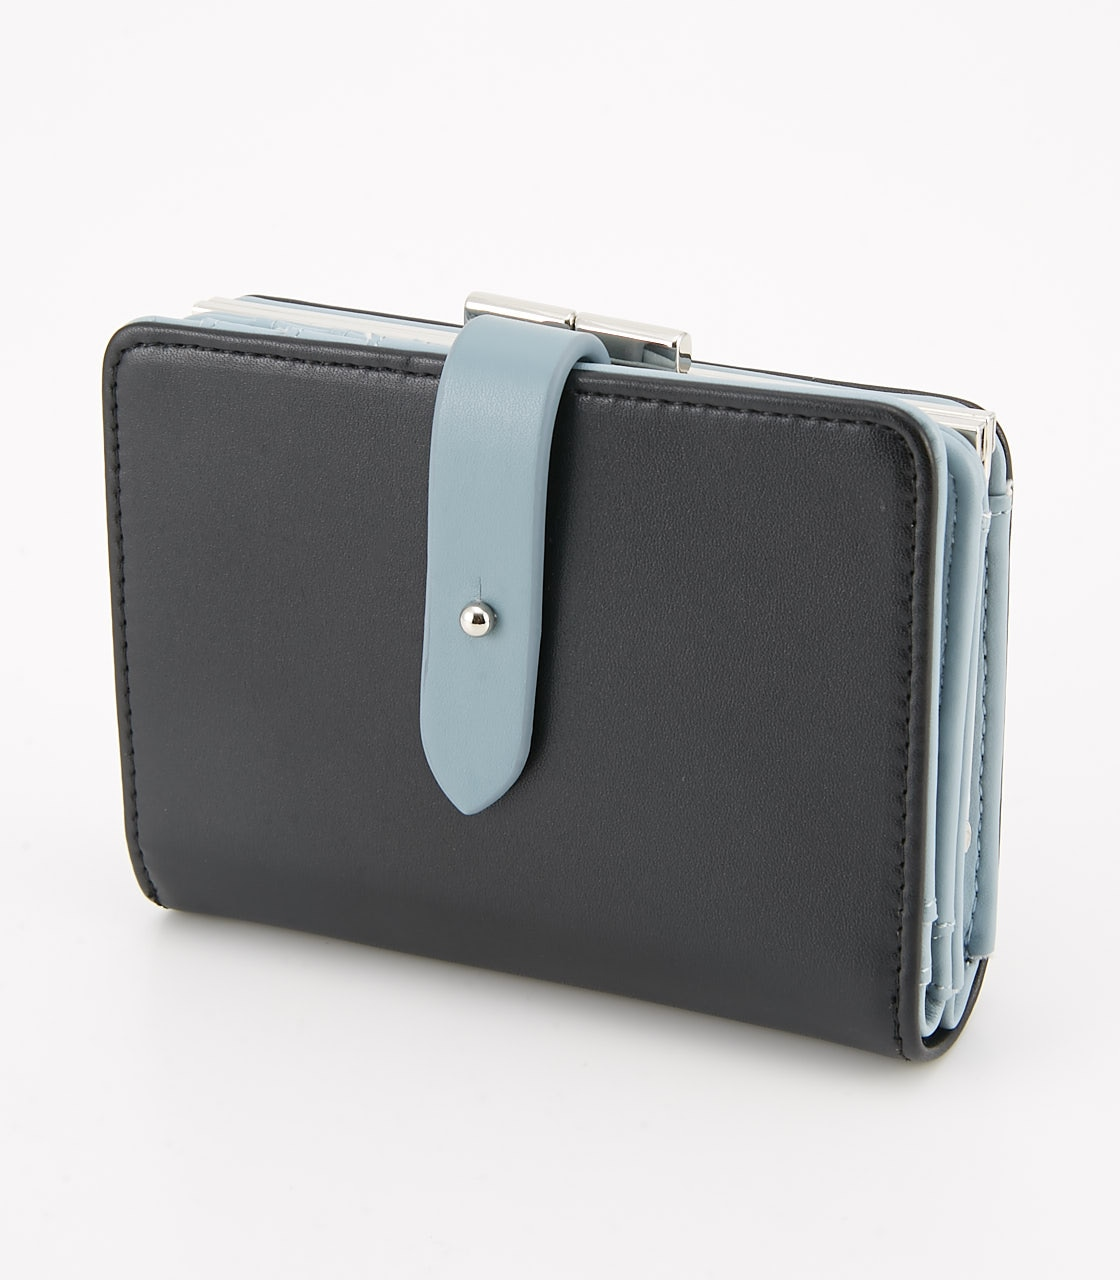 【AZUL BY MOUSSY】COLOR POINT WALLET 詳細画像 BLK 1